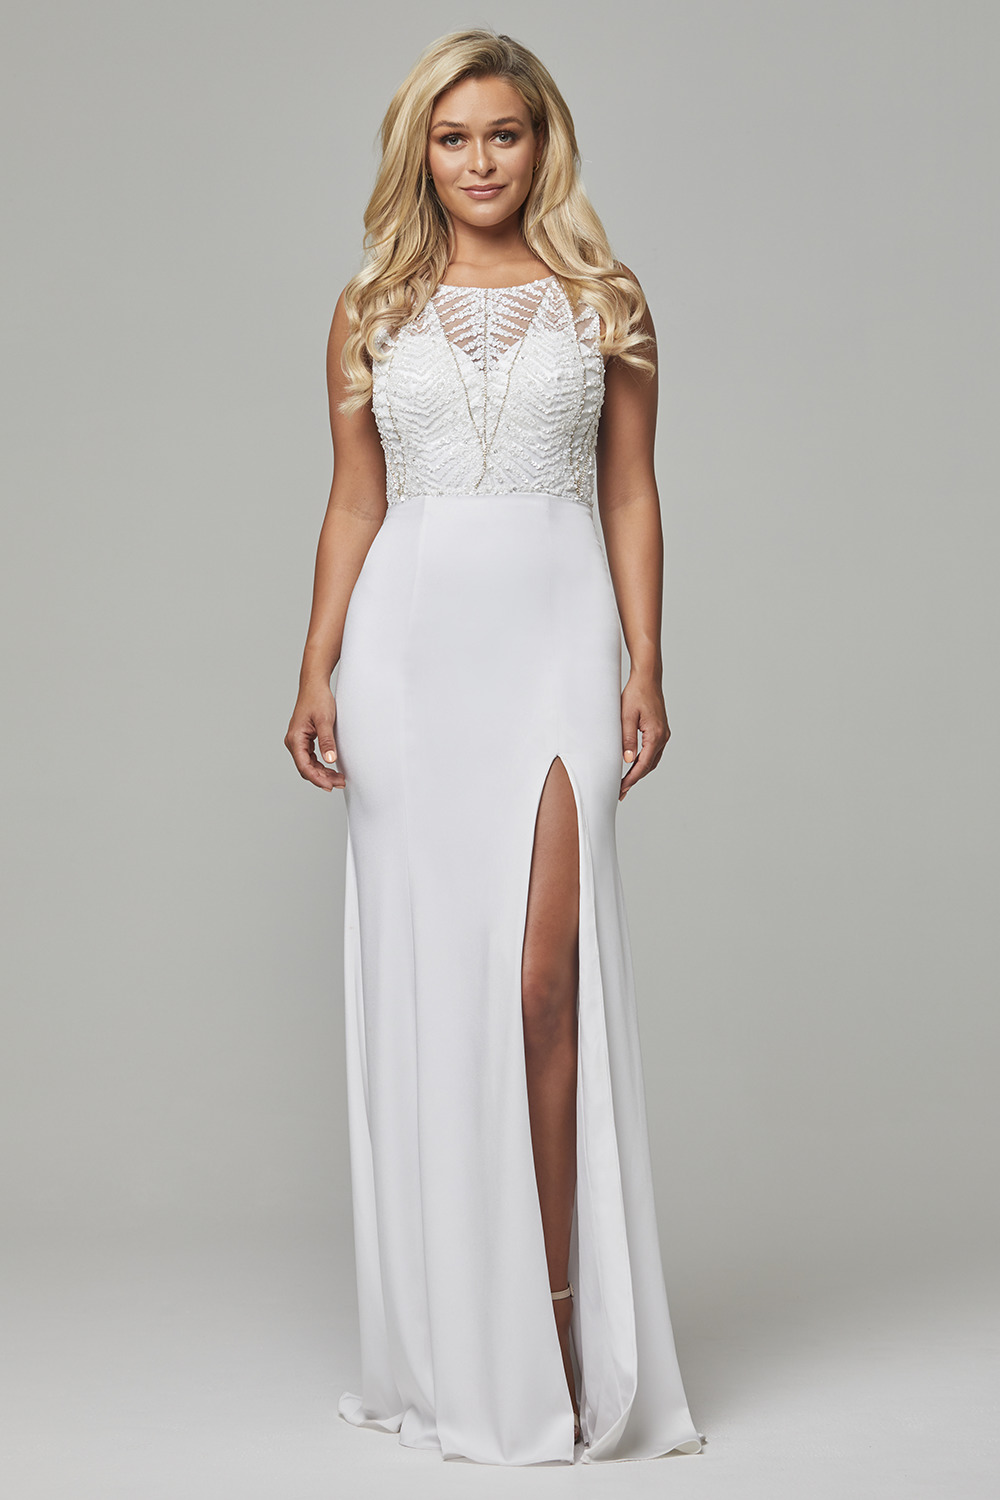 Zaylee beaded low back evening dress PO591